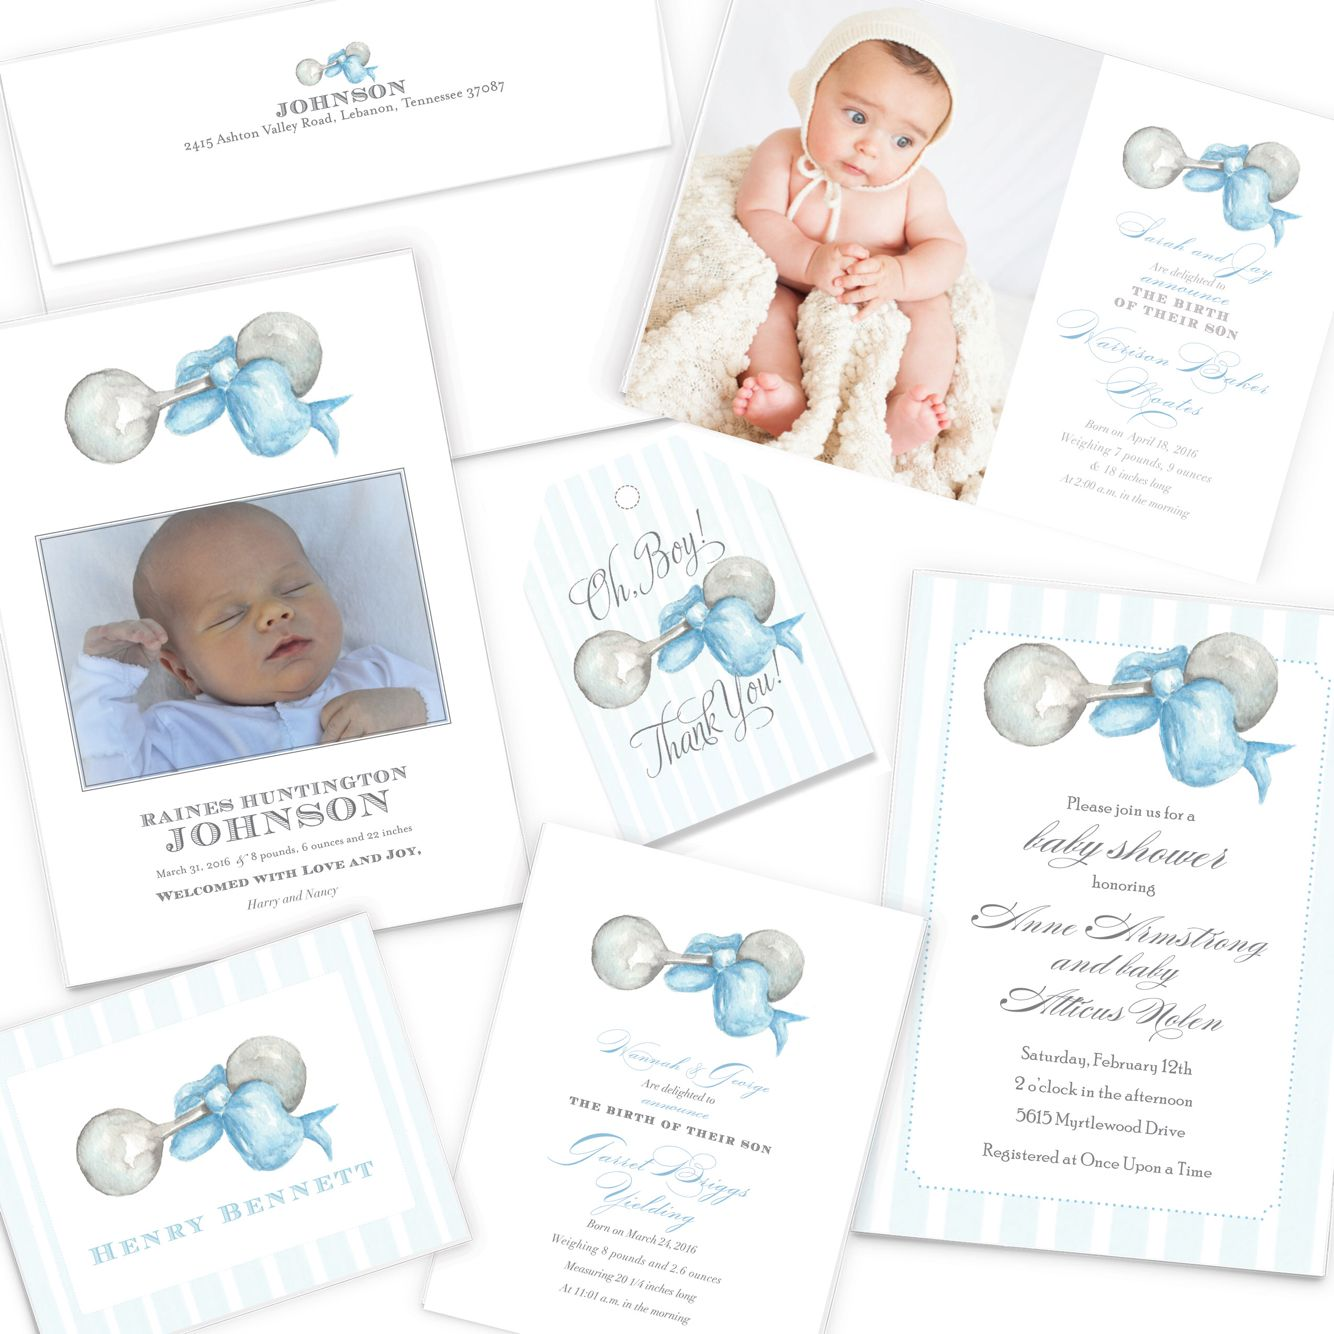 Oh, Boy! Baby boy birth announcement, baby shower invitations ...